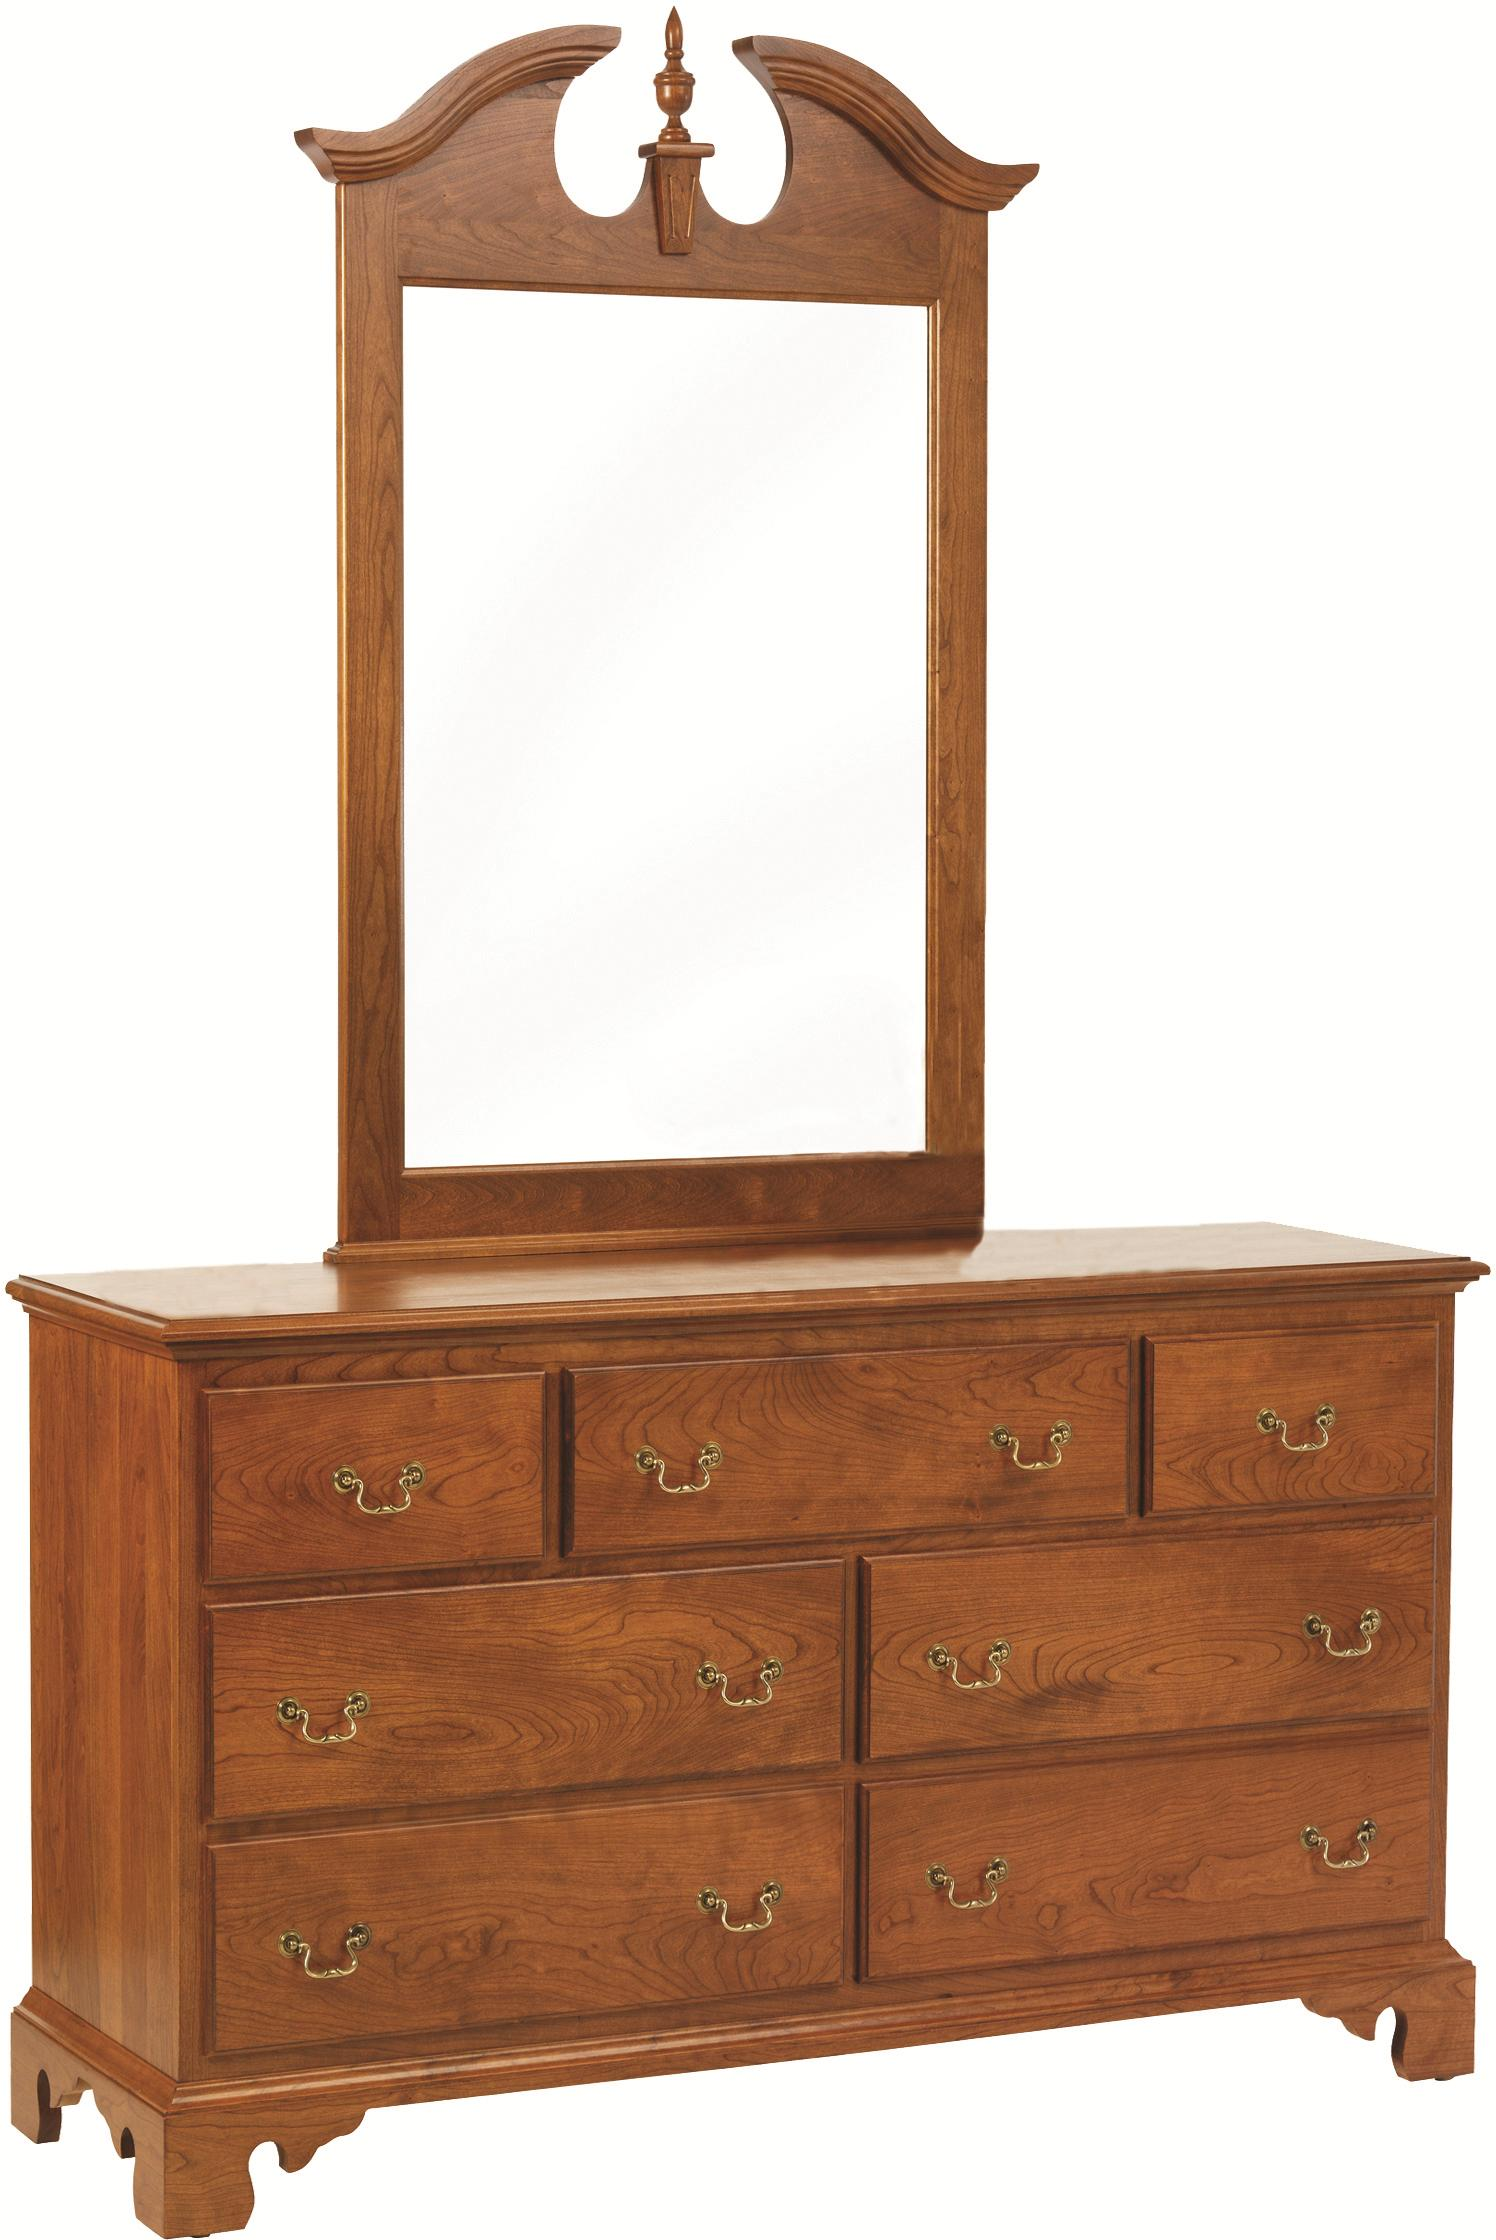 Elegant River Bend Dresser with Mirror by Millcraft at Saugerties Furniture Mart